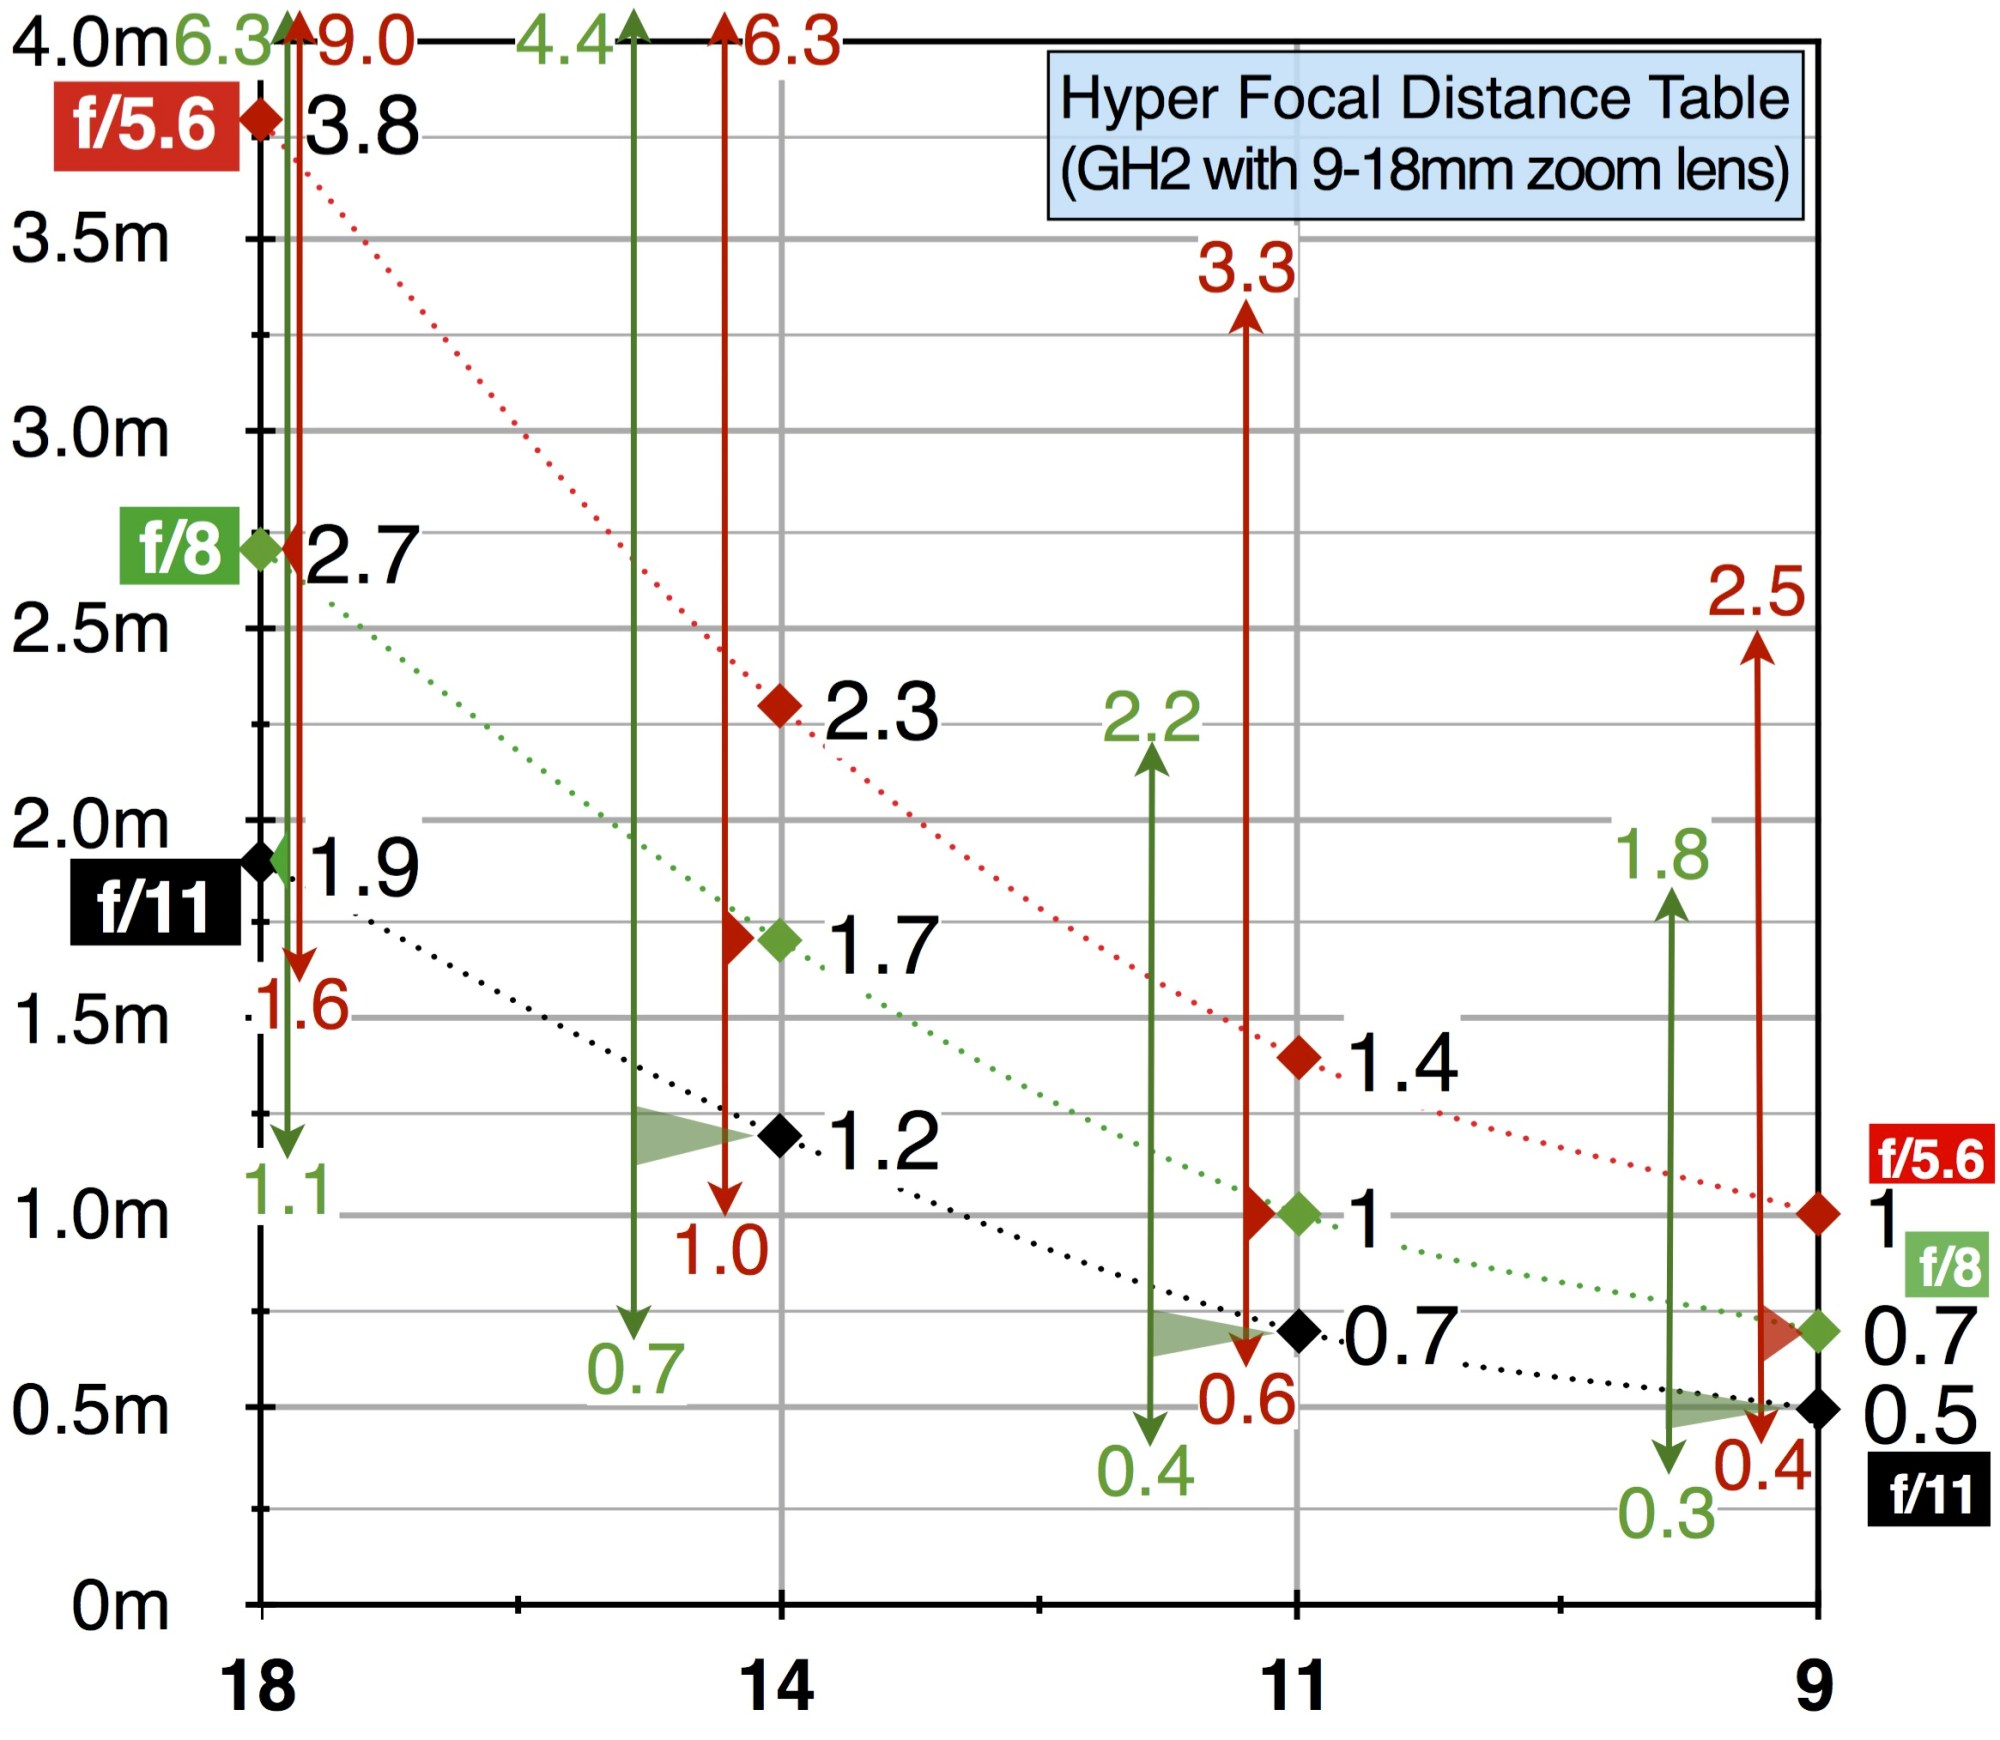 hight resolution of gh2 hyper focal distance table